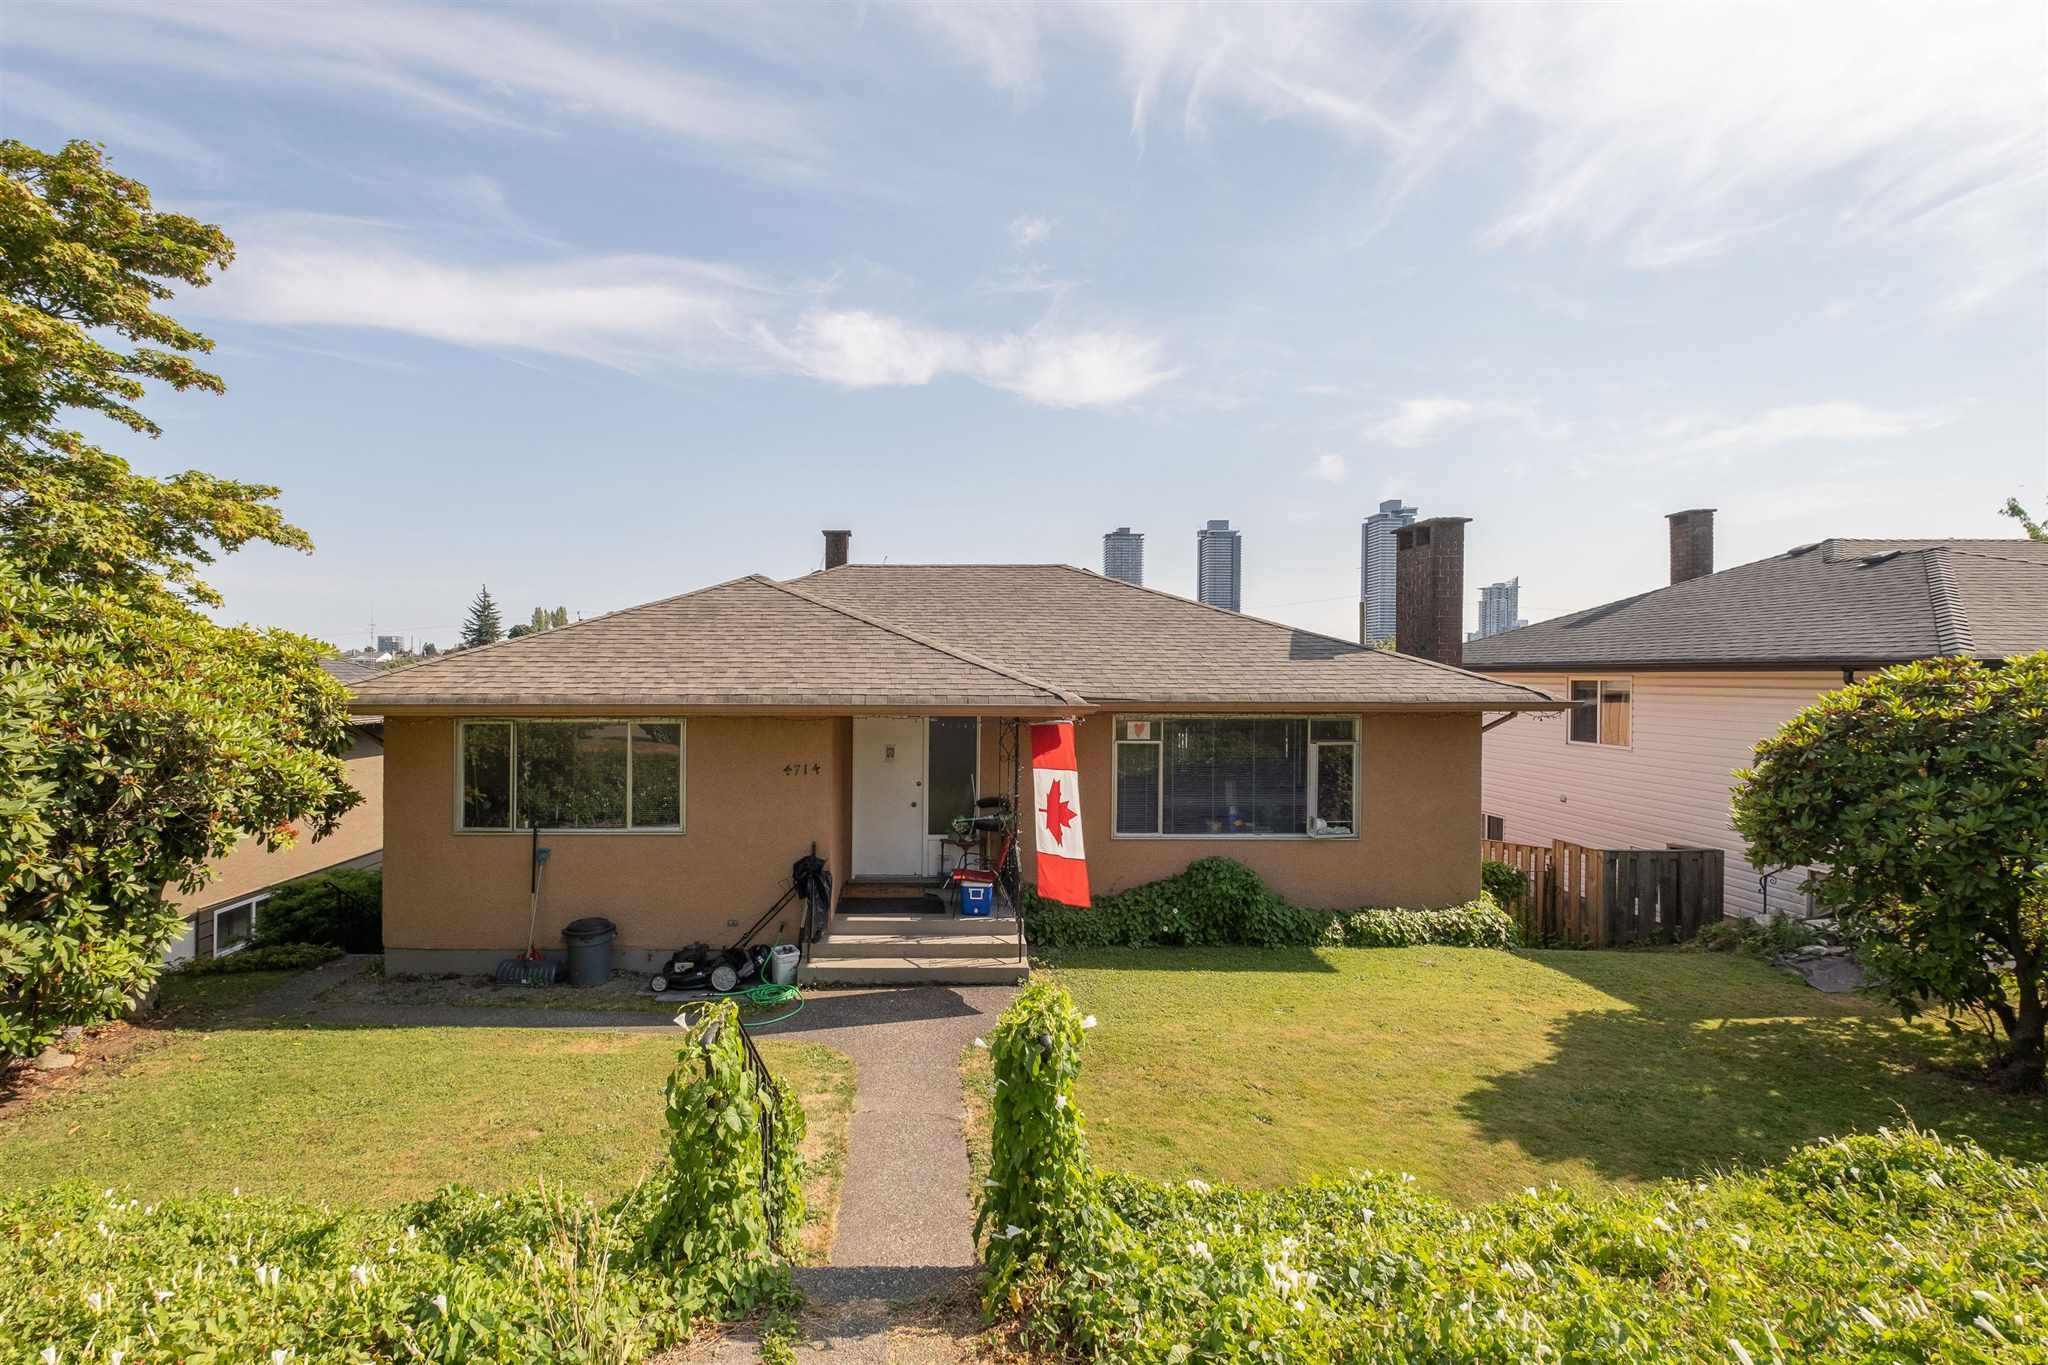 Main Photo: 4714 PARKER Street in Burnaby: Brentwood Park House for sale (Burnaby North)  : MLS®# R2614771